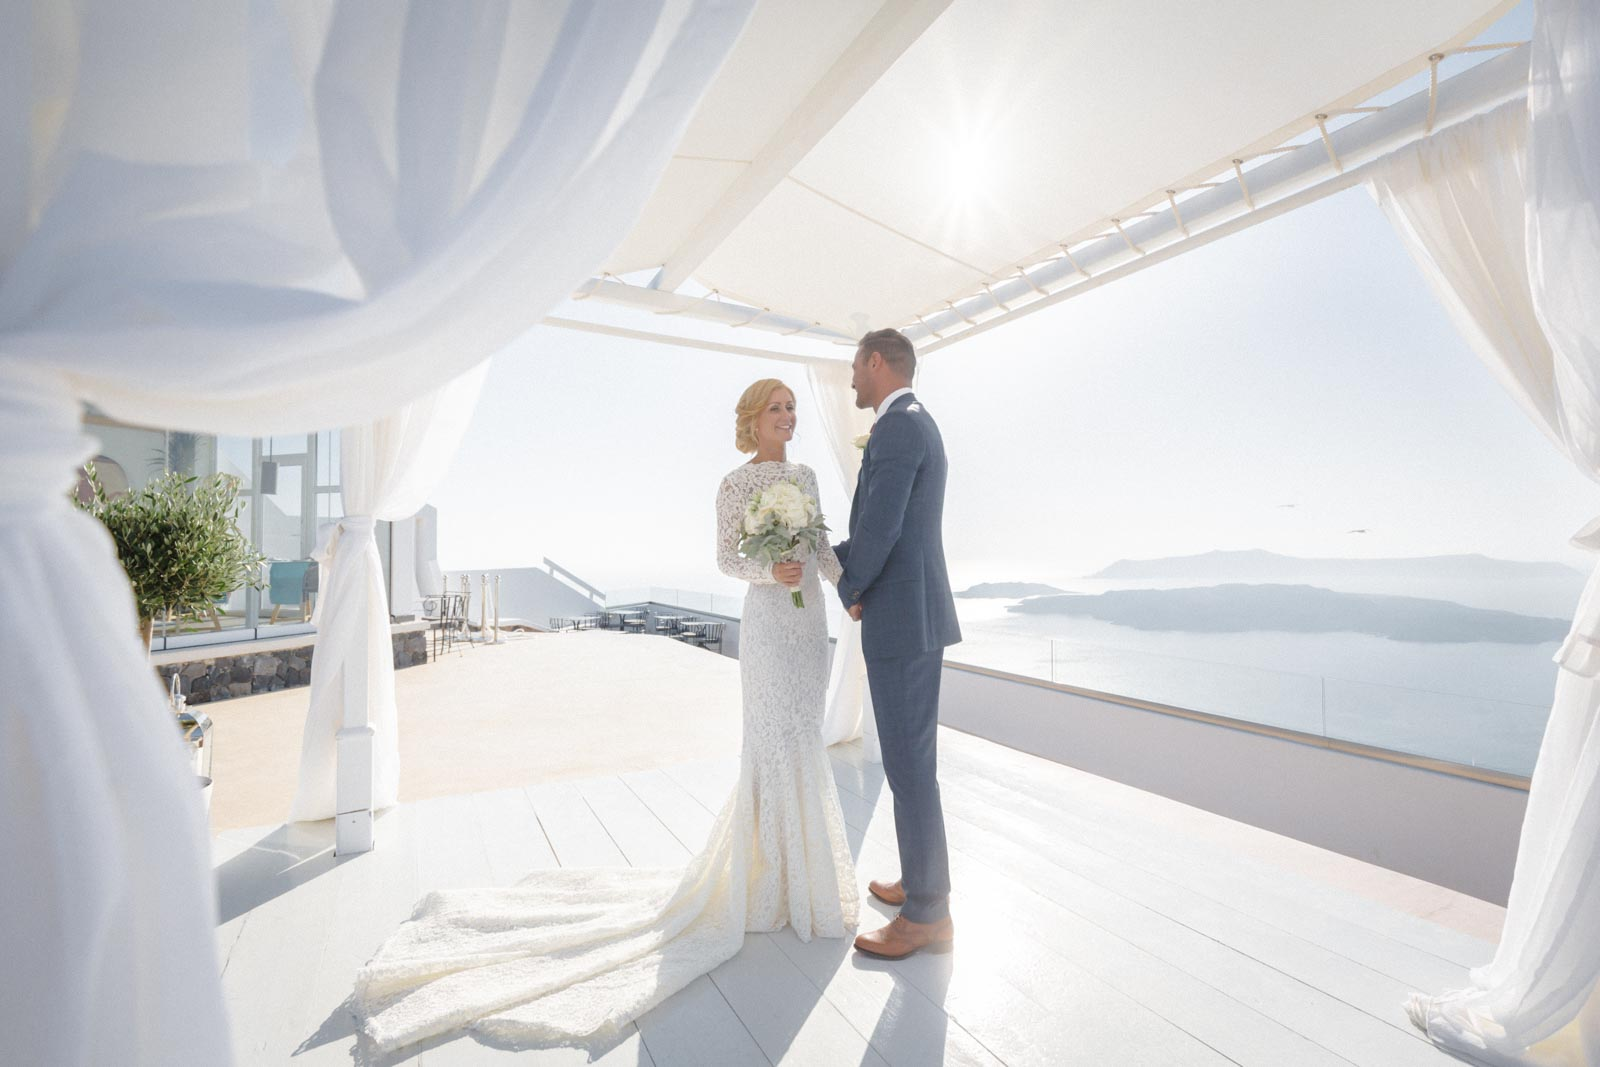 Getting married abroad